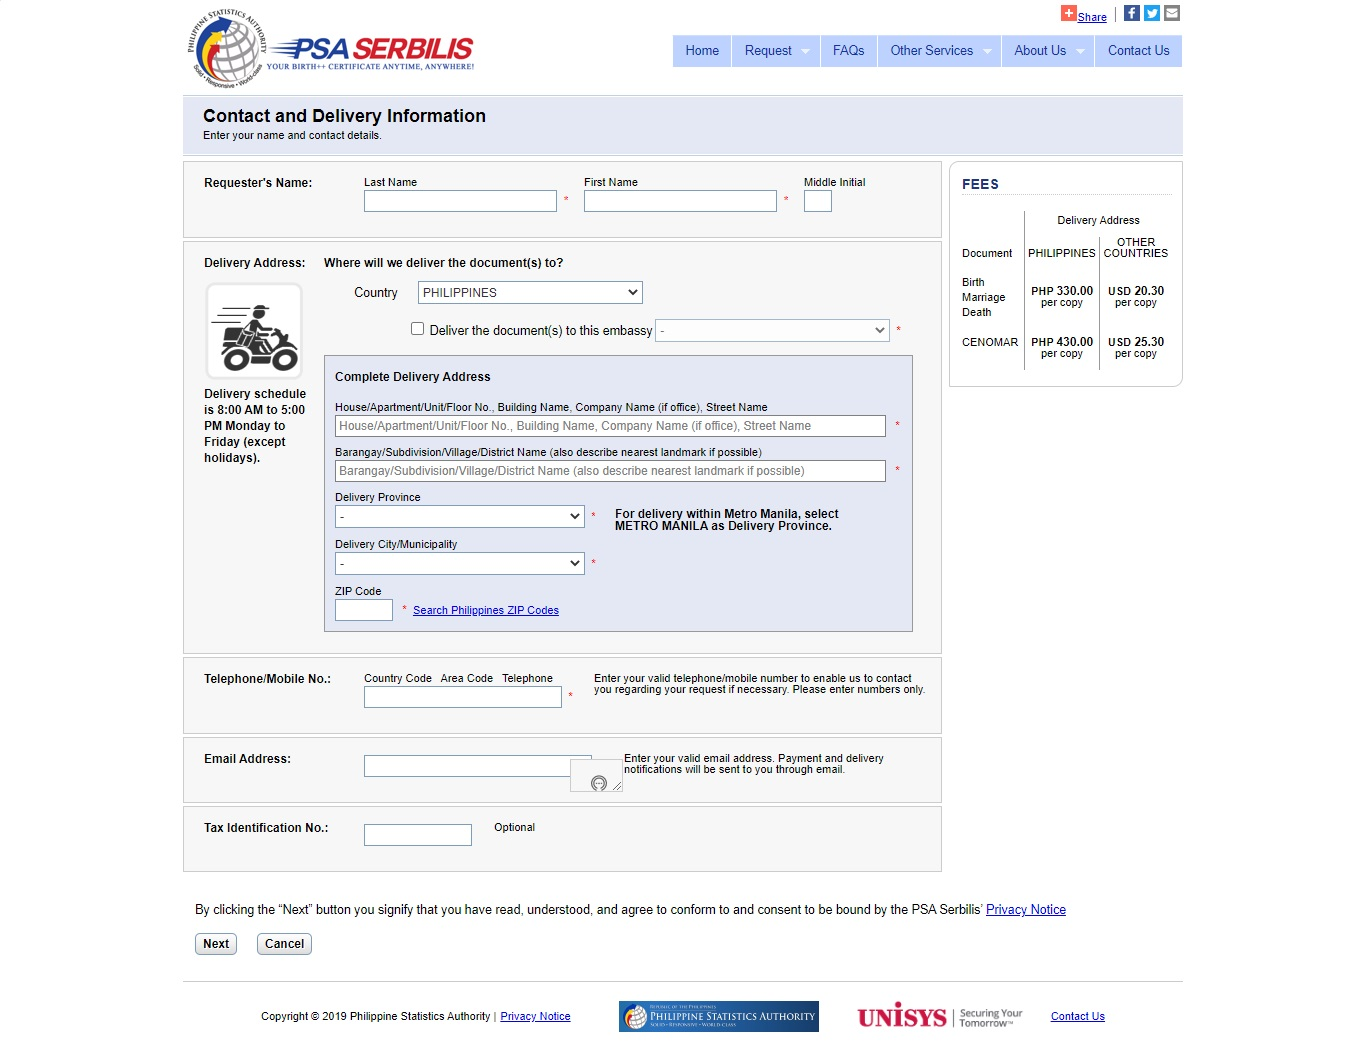 how to get psa birth certificate online in the philippines 2